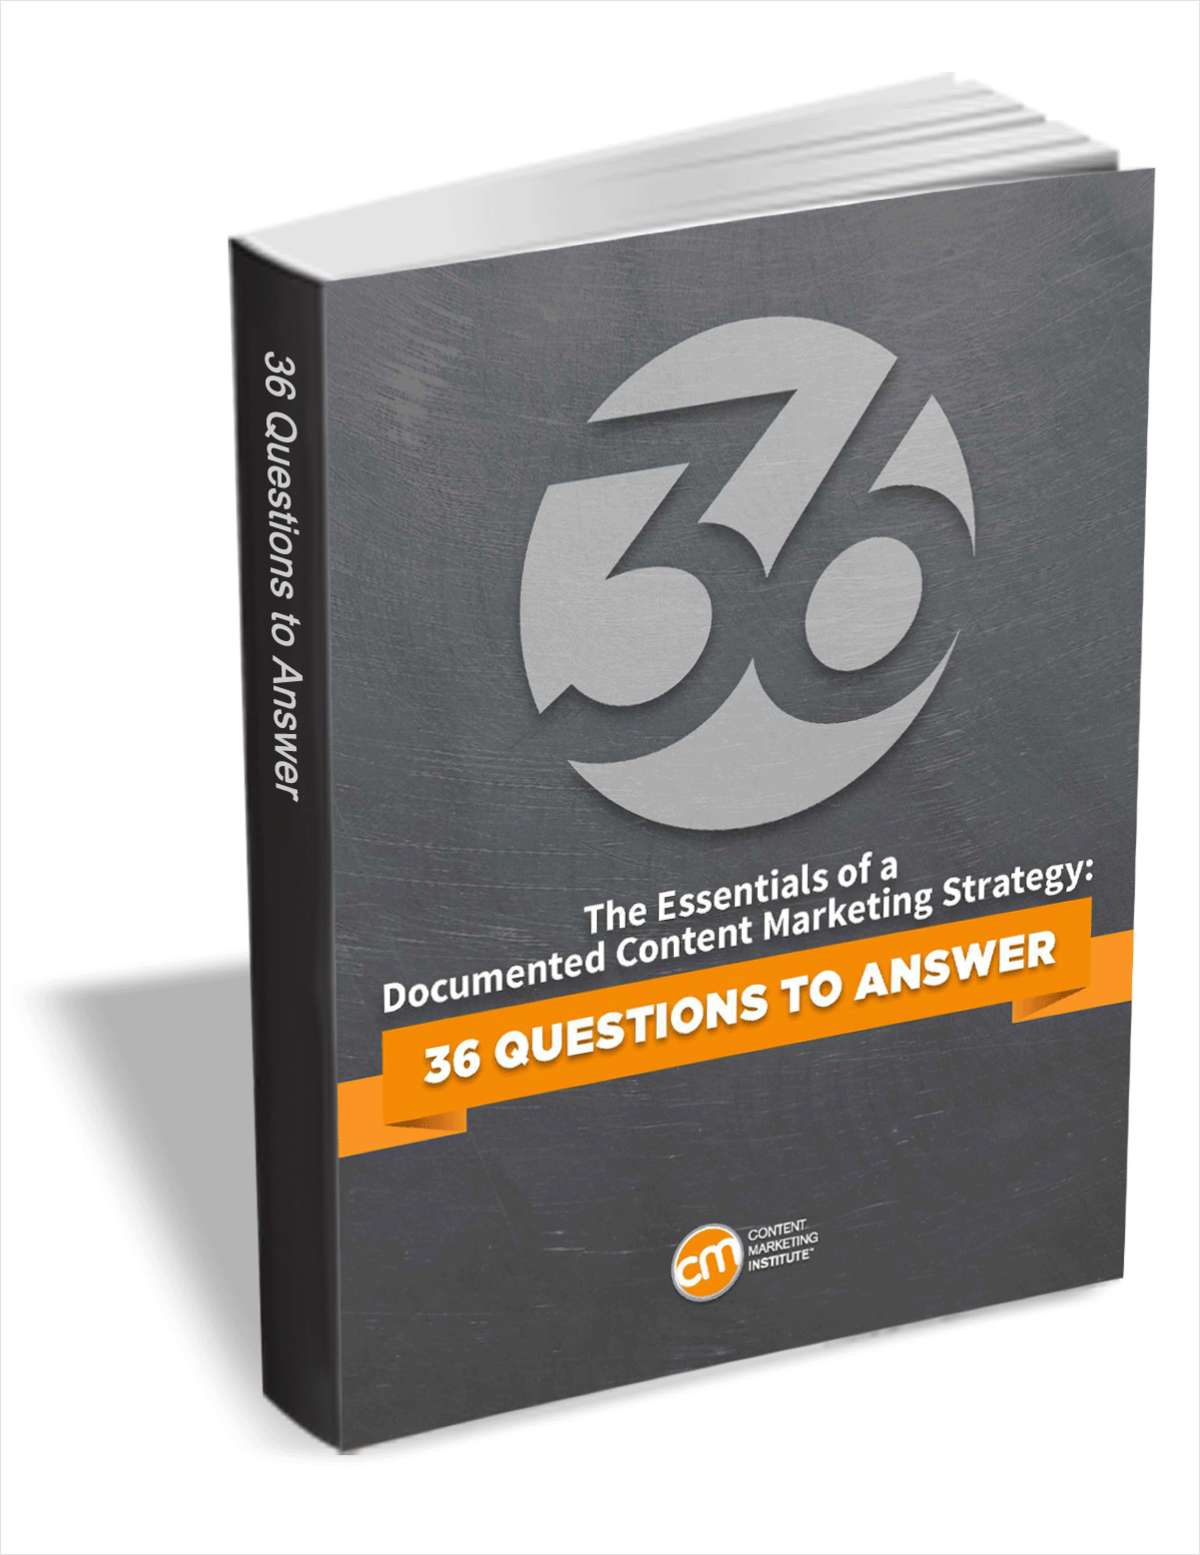 The Essentials of a Documented Content Marketing Strategy: 36 Questions to Answer